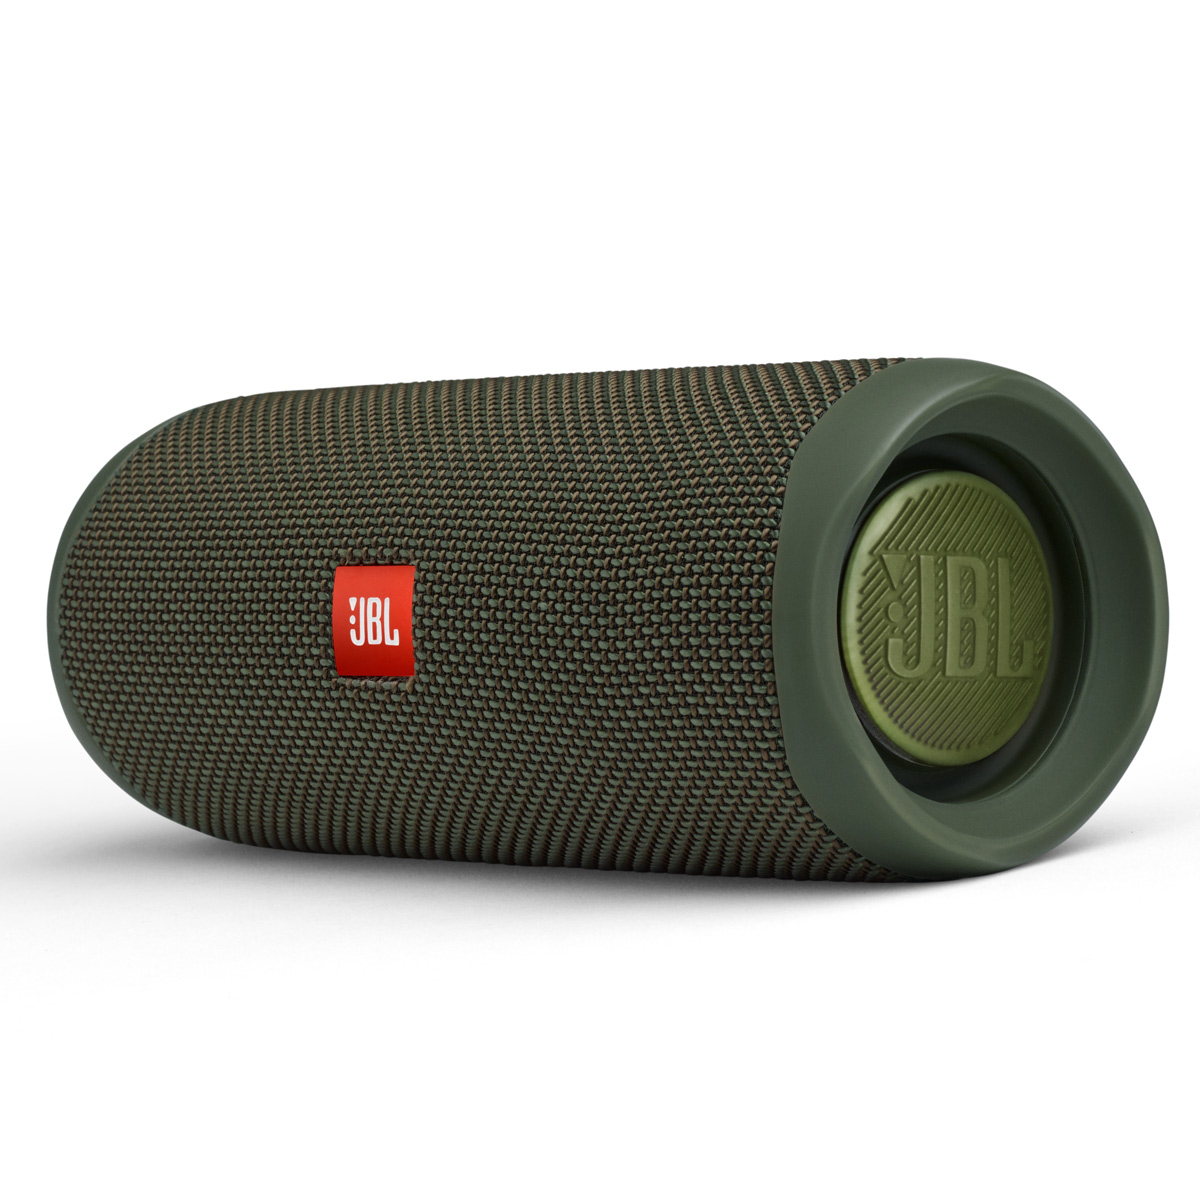 JBL-Flip-5-Portable-Waterproof-Bluetooth-Speaker thumbnail 23